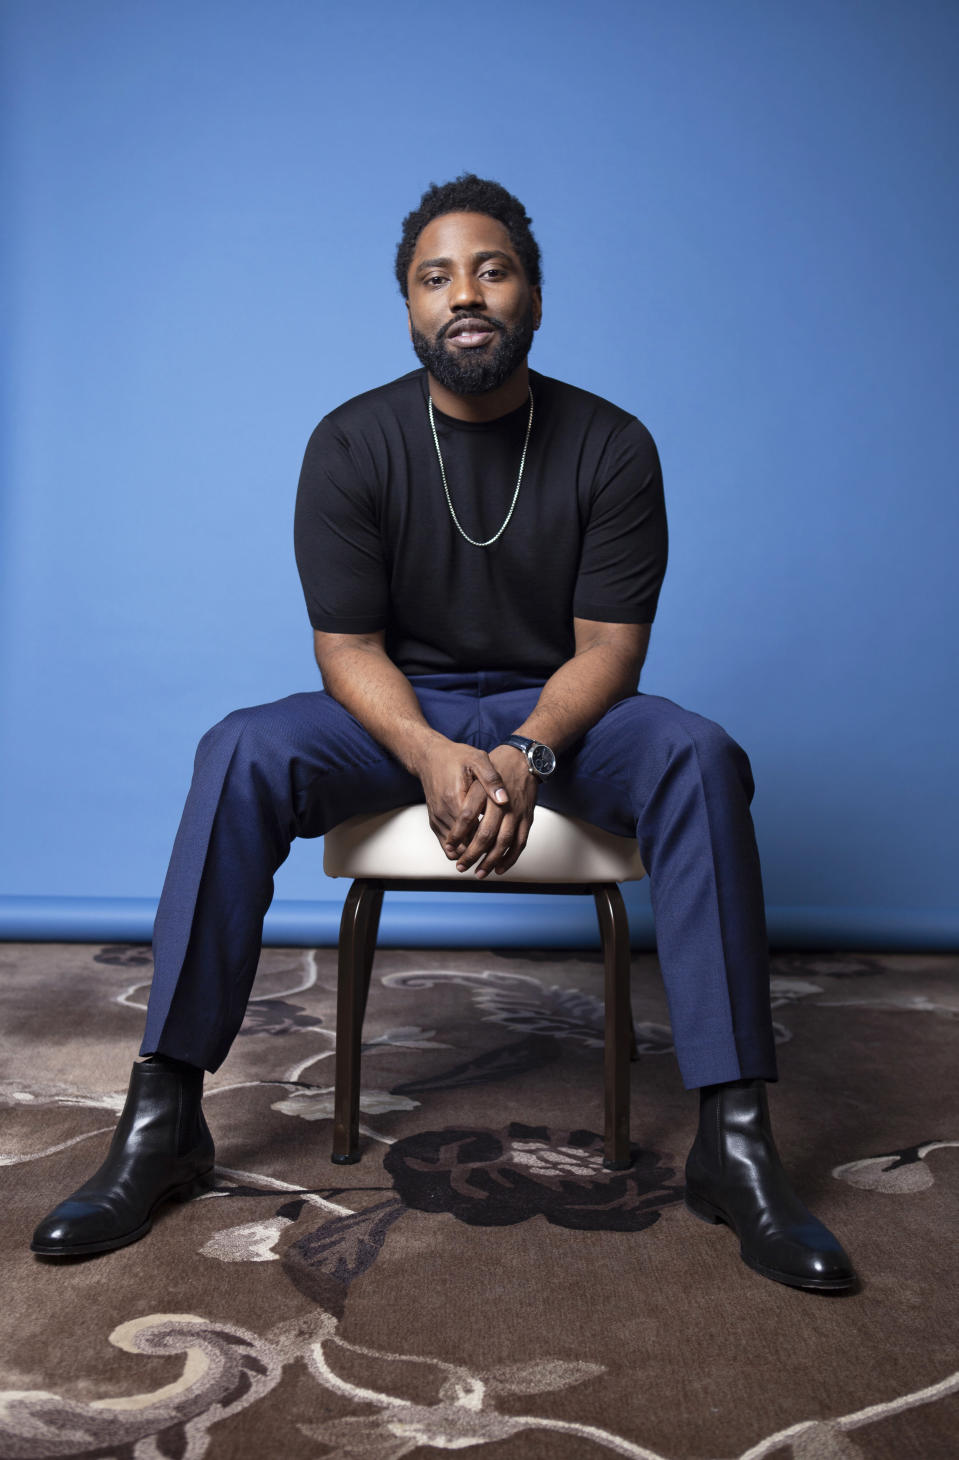 FILE - John David Washington poses for a portrait on Nov. 14, 2018, at the Four Seasons Hotel in Los Angeles. Washington turns 37 on July 28. (Photo by Rebecca Cabage/Invision/AP, File)